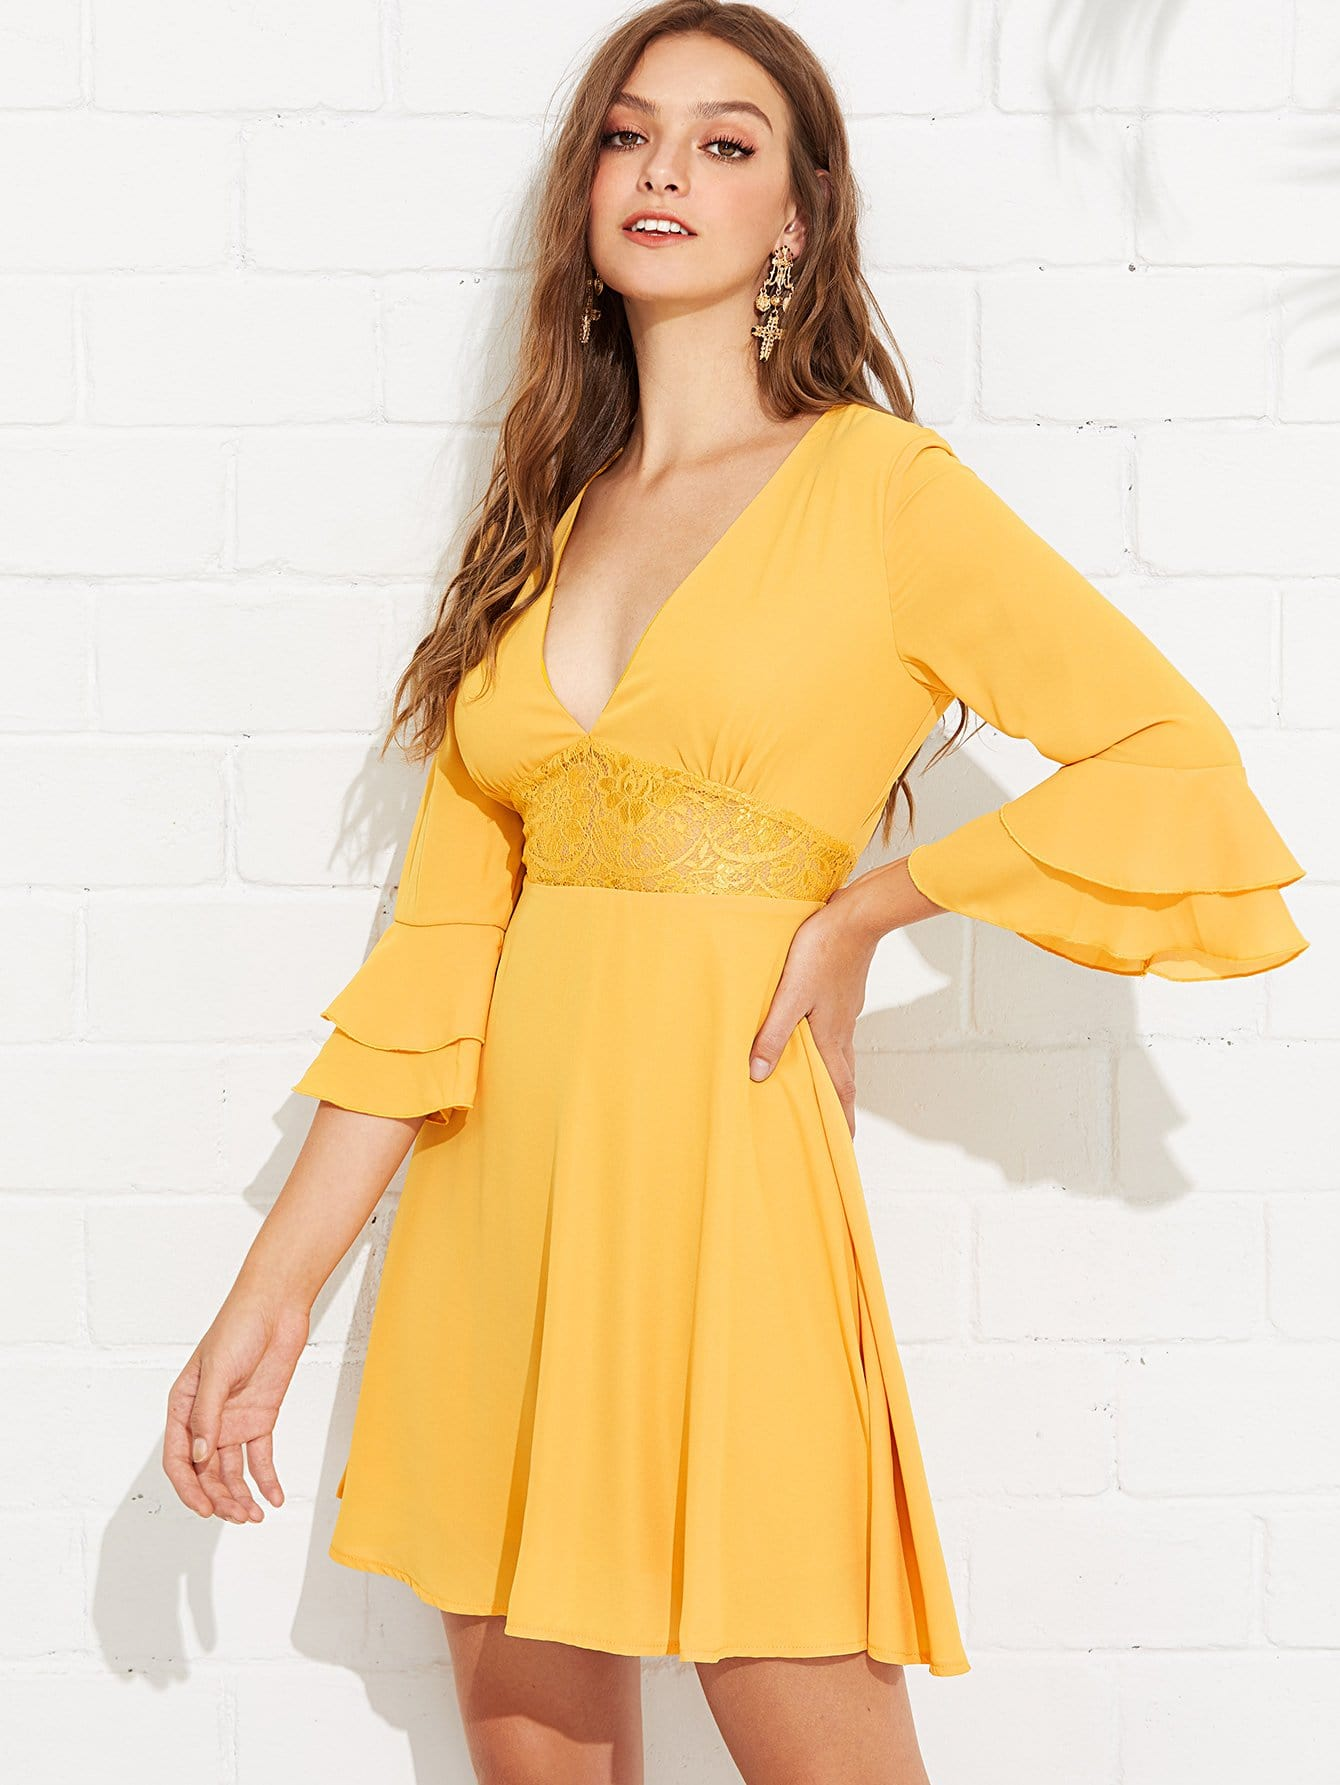 Lace Panel Layered Bell Sleeve Dress mesh panel layered oversized sleeve dress